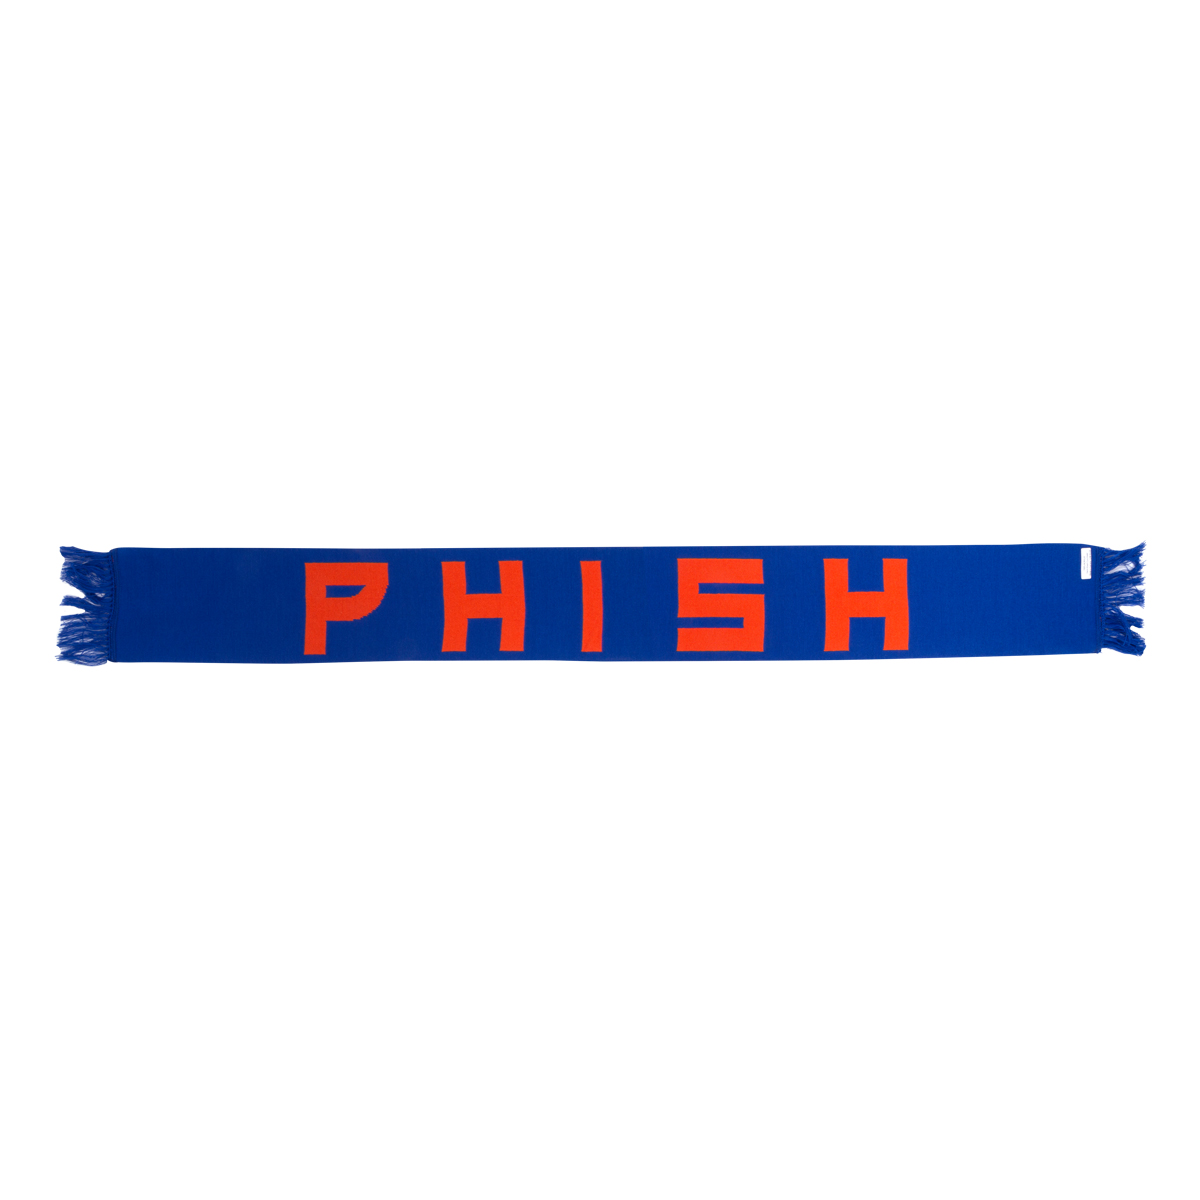 Phish Scarf in Orange/Blue